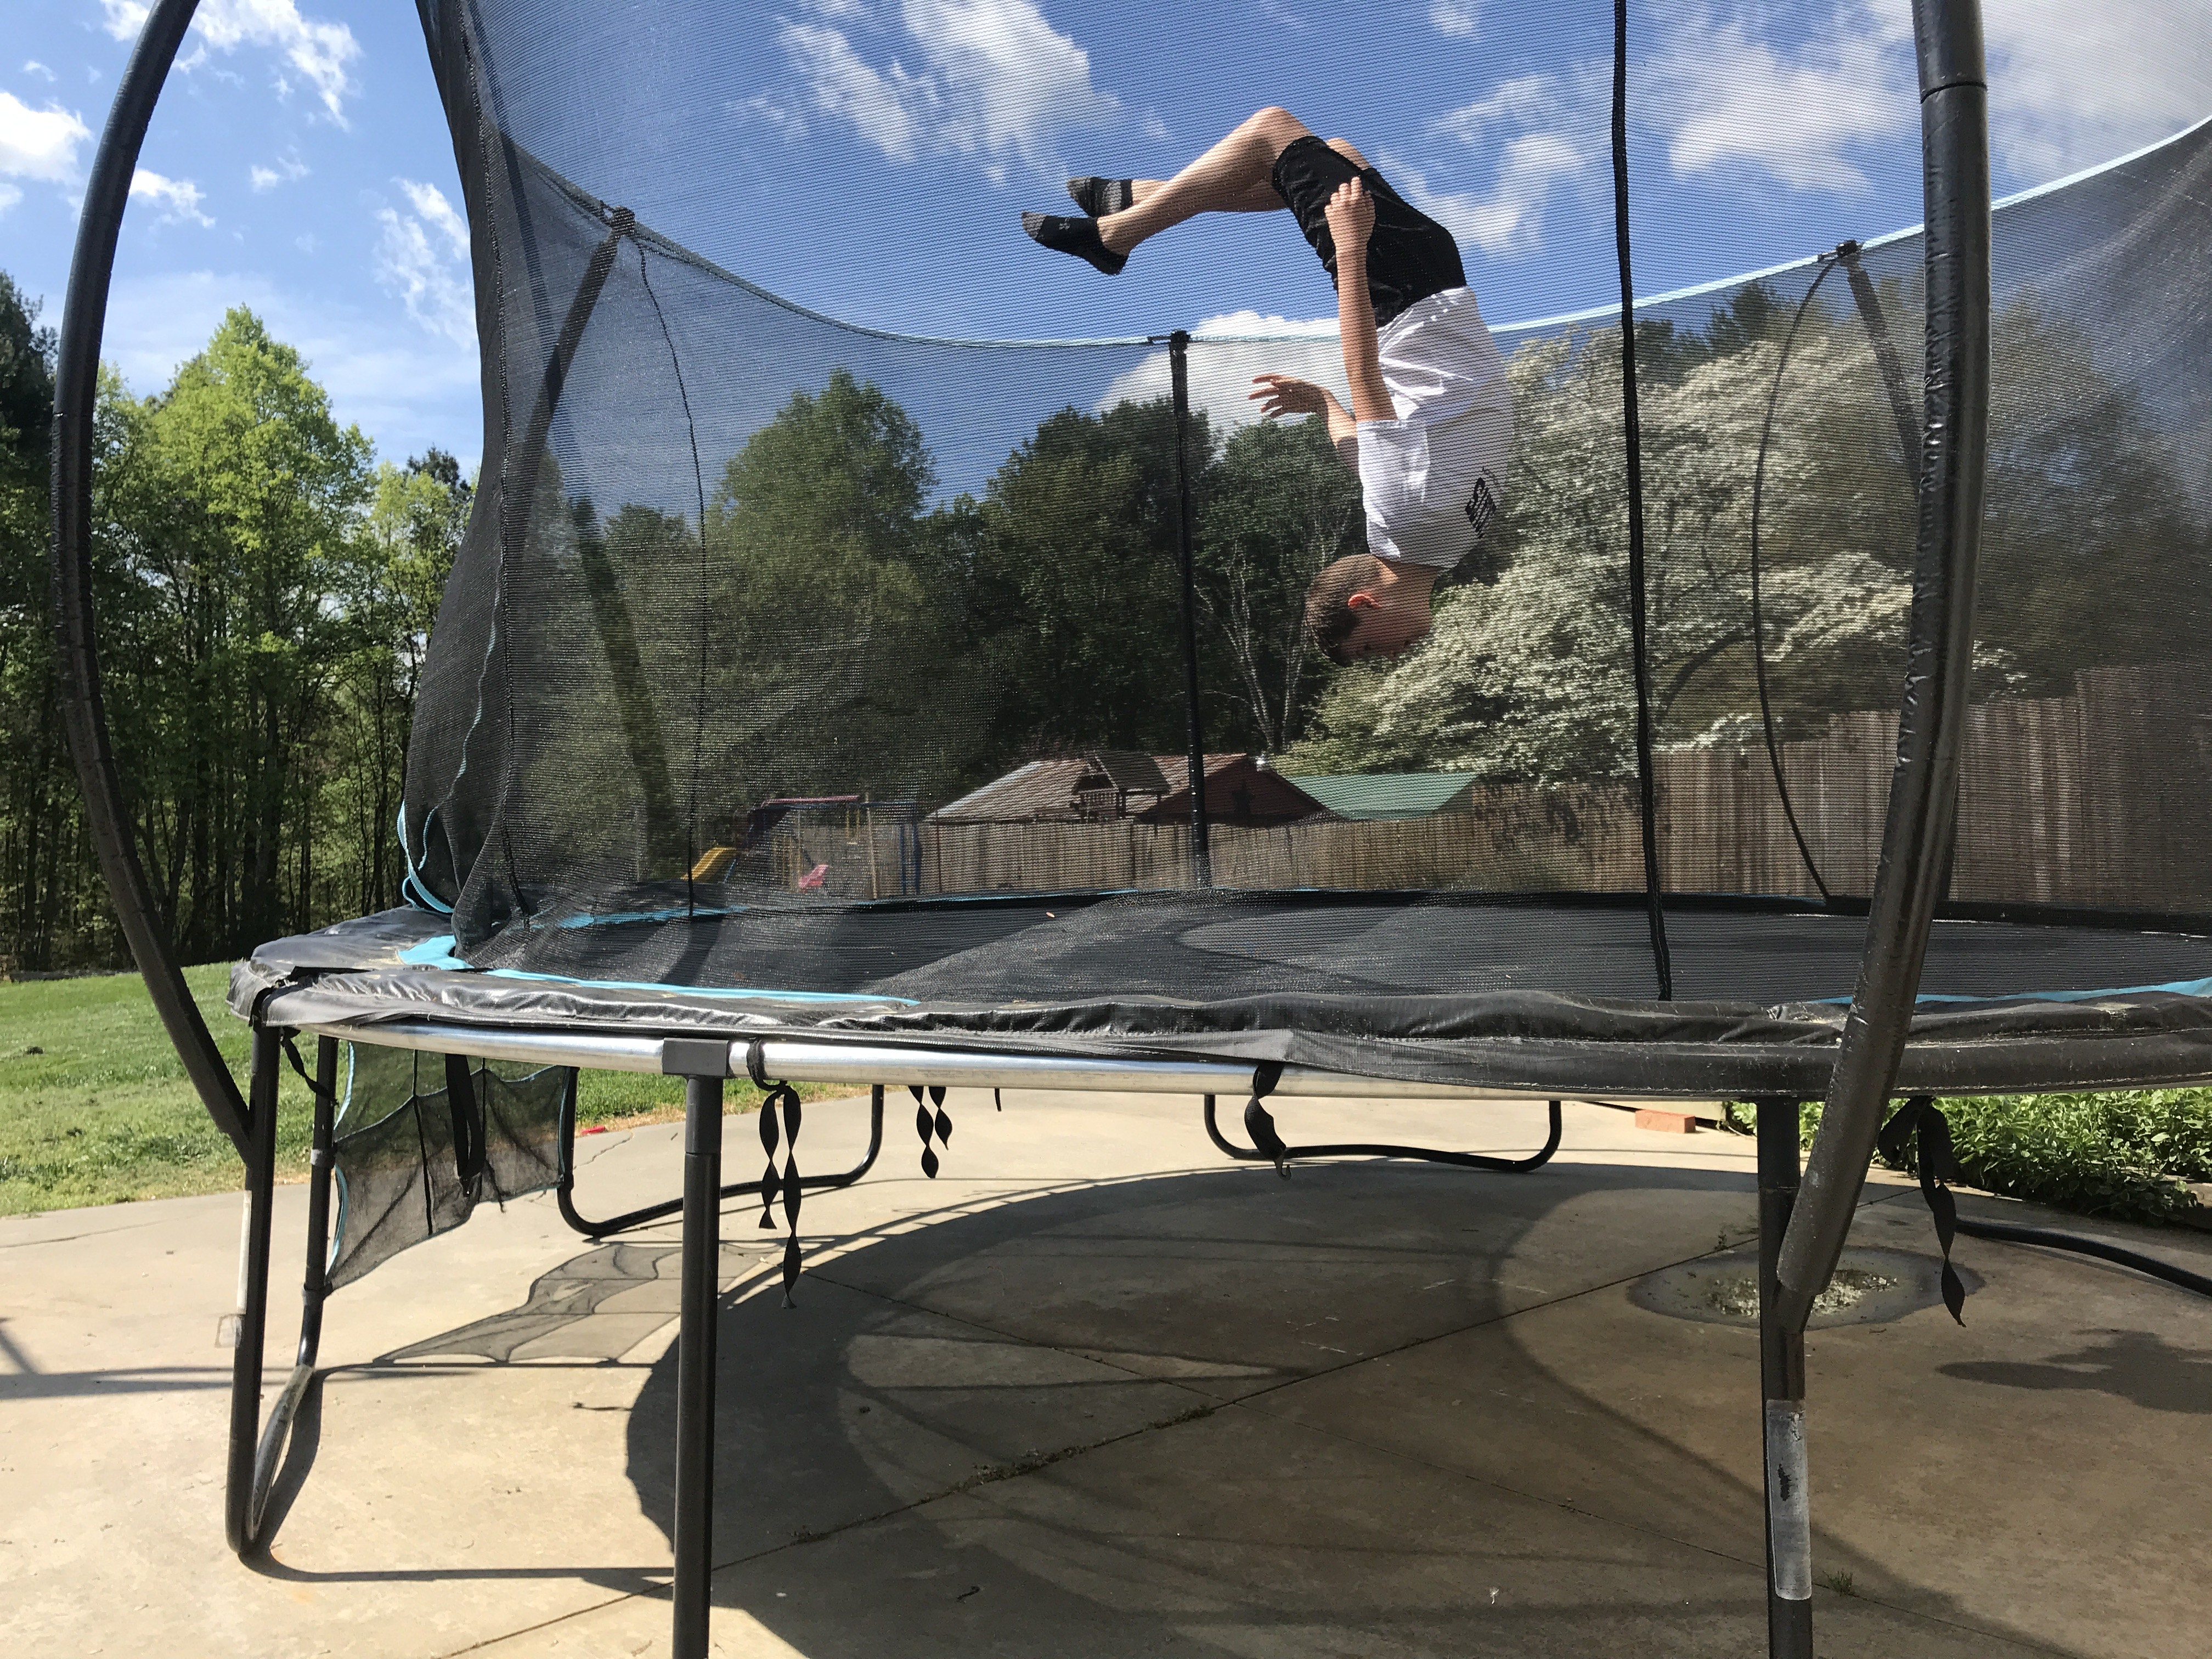 """(Photo by Eli Wingler of Caldwell County): Photography is a hobby and 4-H project that can be done outdoors. Eli Wingler, 8th grade student in Caldwell County, participated in a 4-H photography workshop, """"Focus on Photography,"""" this spring and is pictured jumping on a trampoline outside in his photograph."""